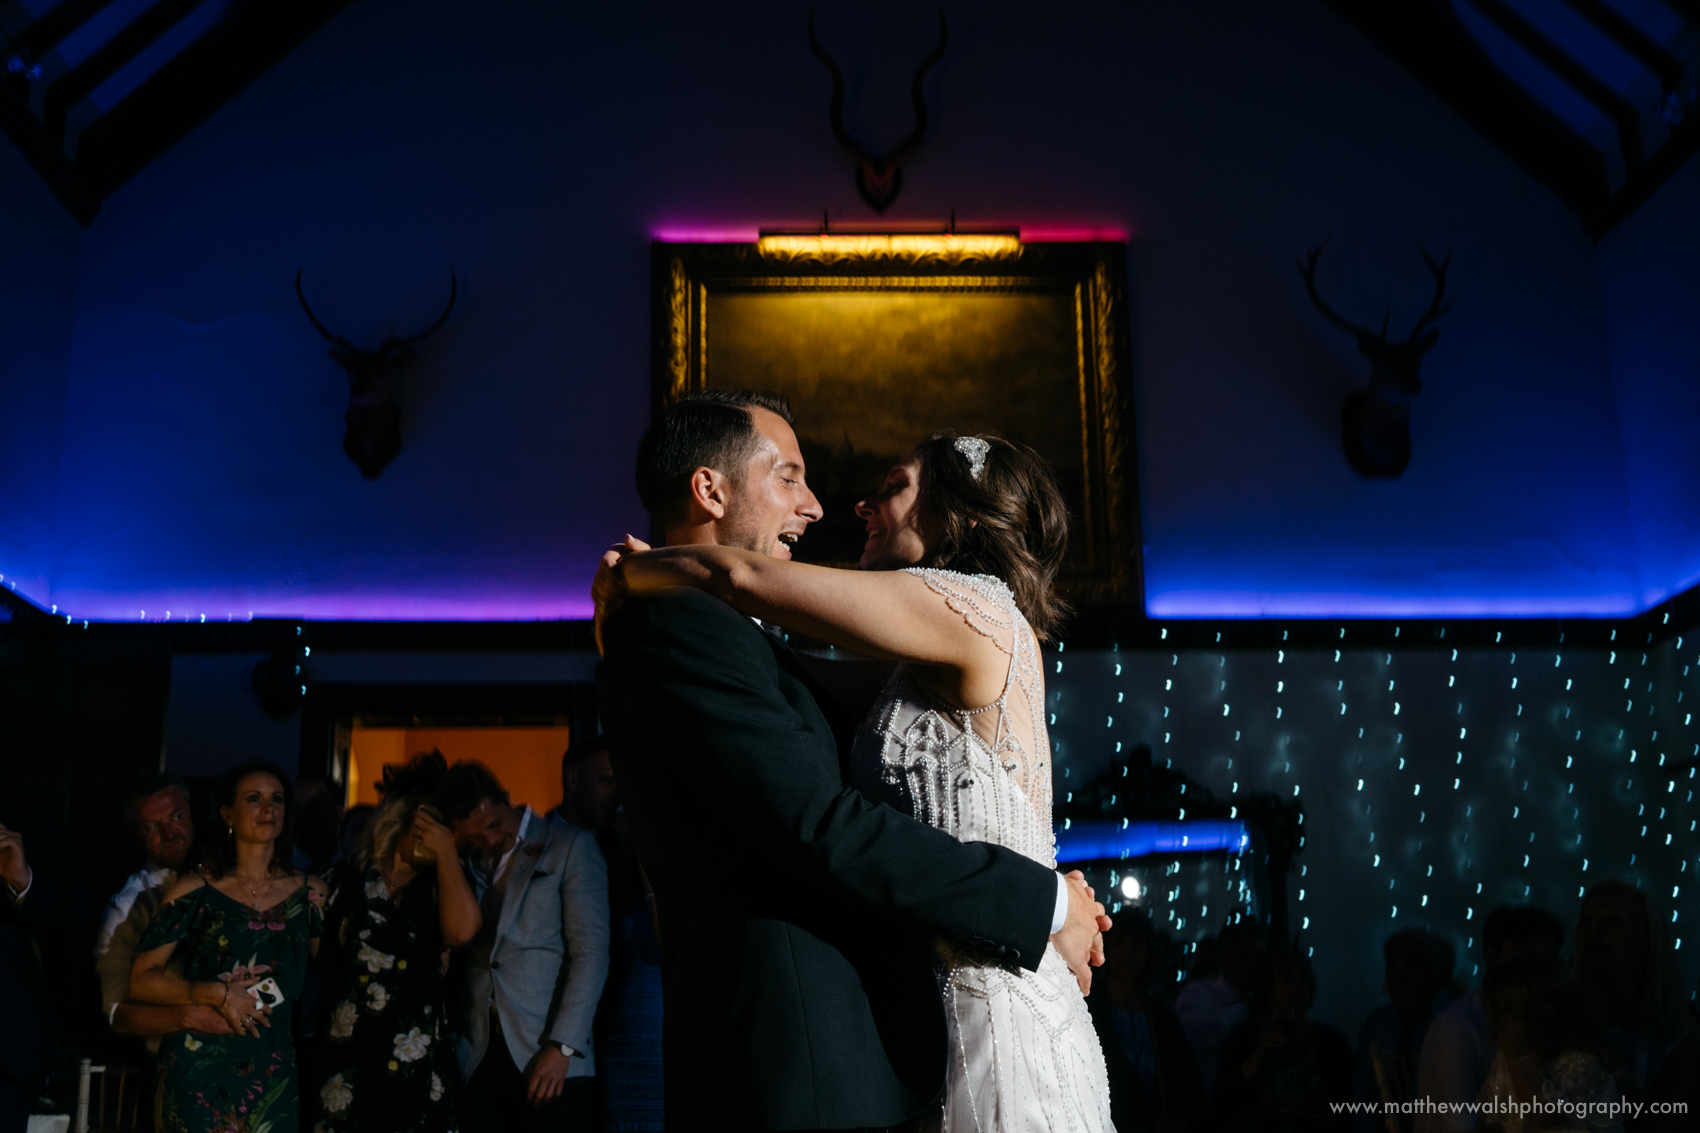 Happiness during the first dance